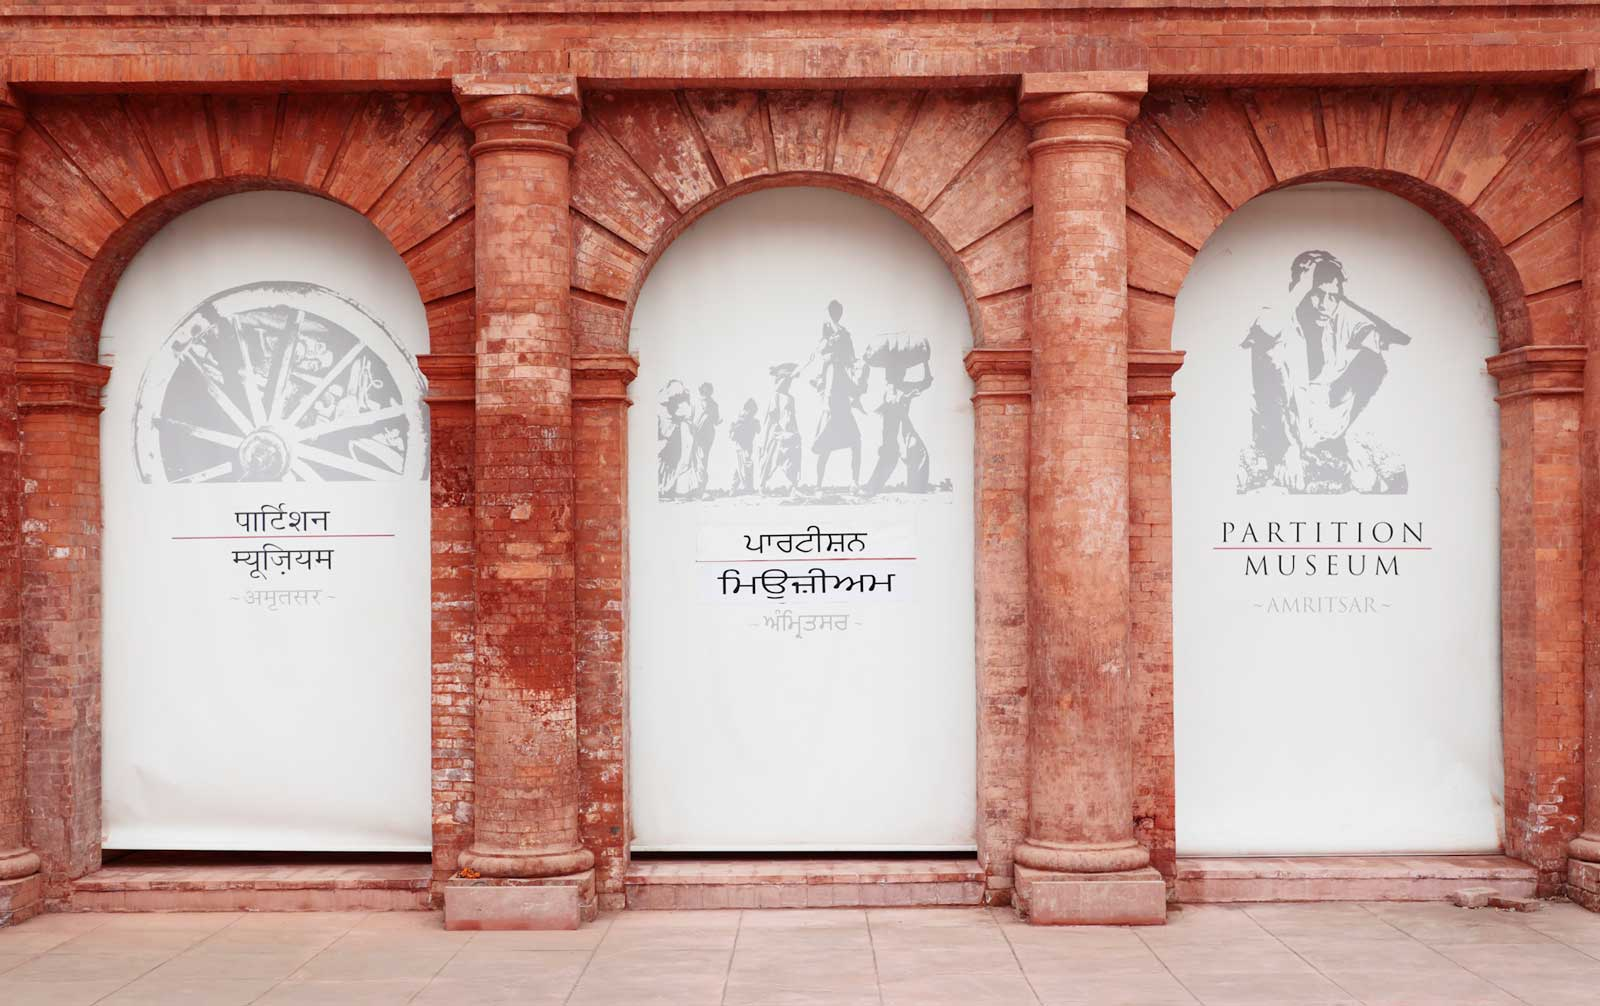 Jallianwala Bagh, Amritsar, Golden Temple, India, NewsMobile, Partition Museum,